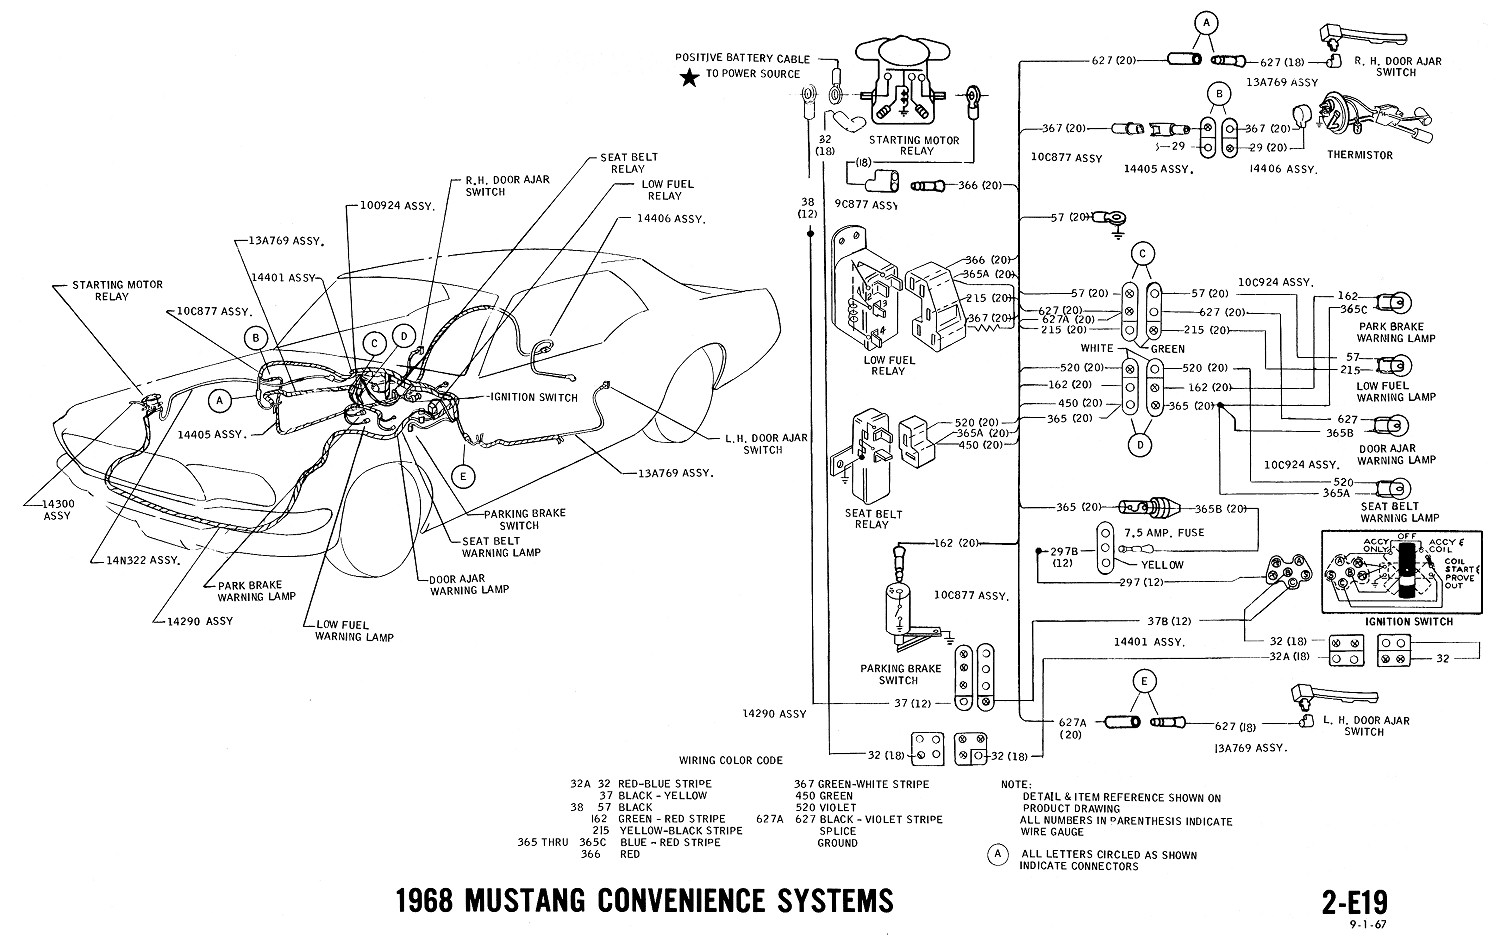 Wiring Diagram 2010 Mustang Another Blog About 2007 Ford Focus Manual Original 1968 Diagrams Evolving Software Rh Peterfranza Com